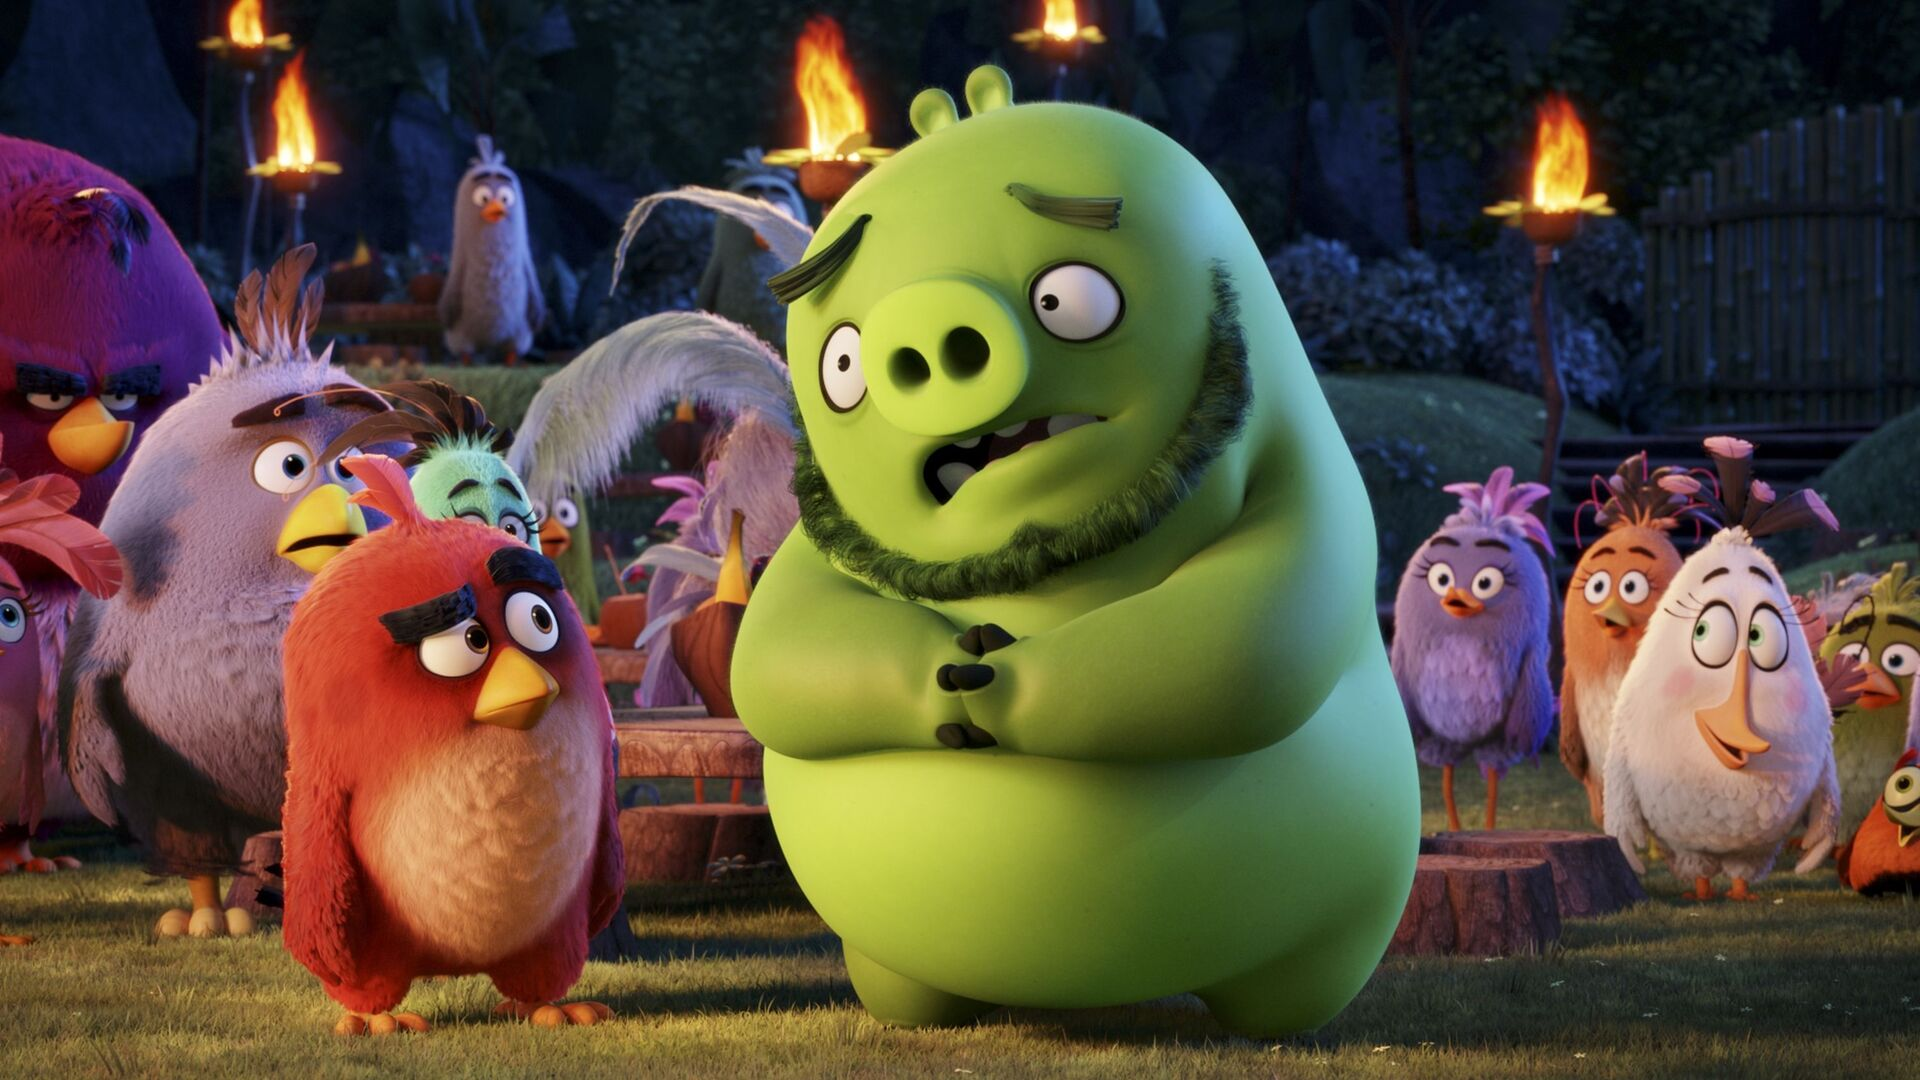 1920x1080 Angry Birds Movie 2016 Laptop Full Hd 1080p Hd 4k Images, Photos, Reviews